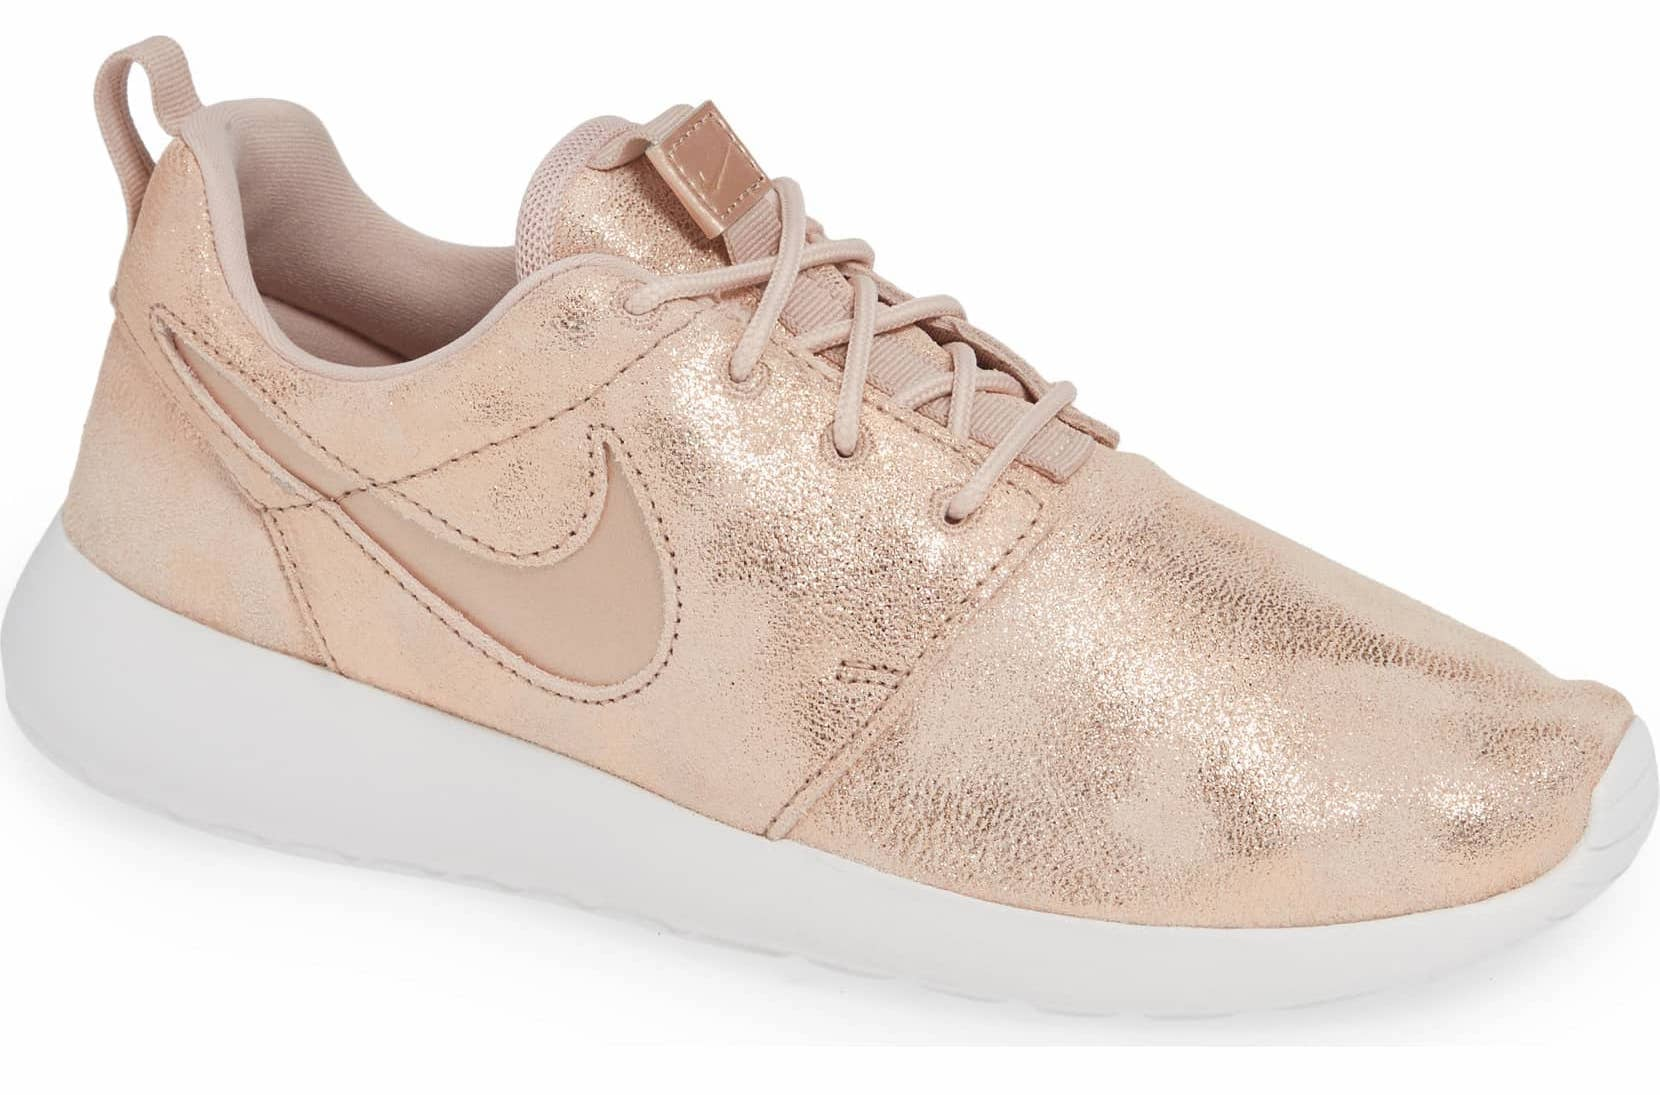 cb5c93765b1 Rose Gold Nike Sneakers